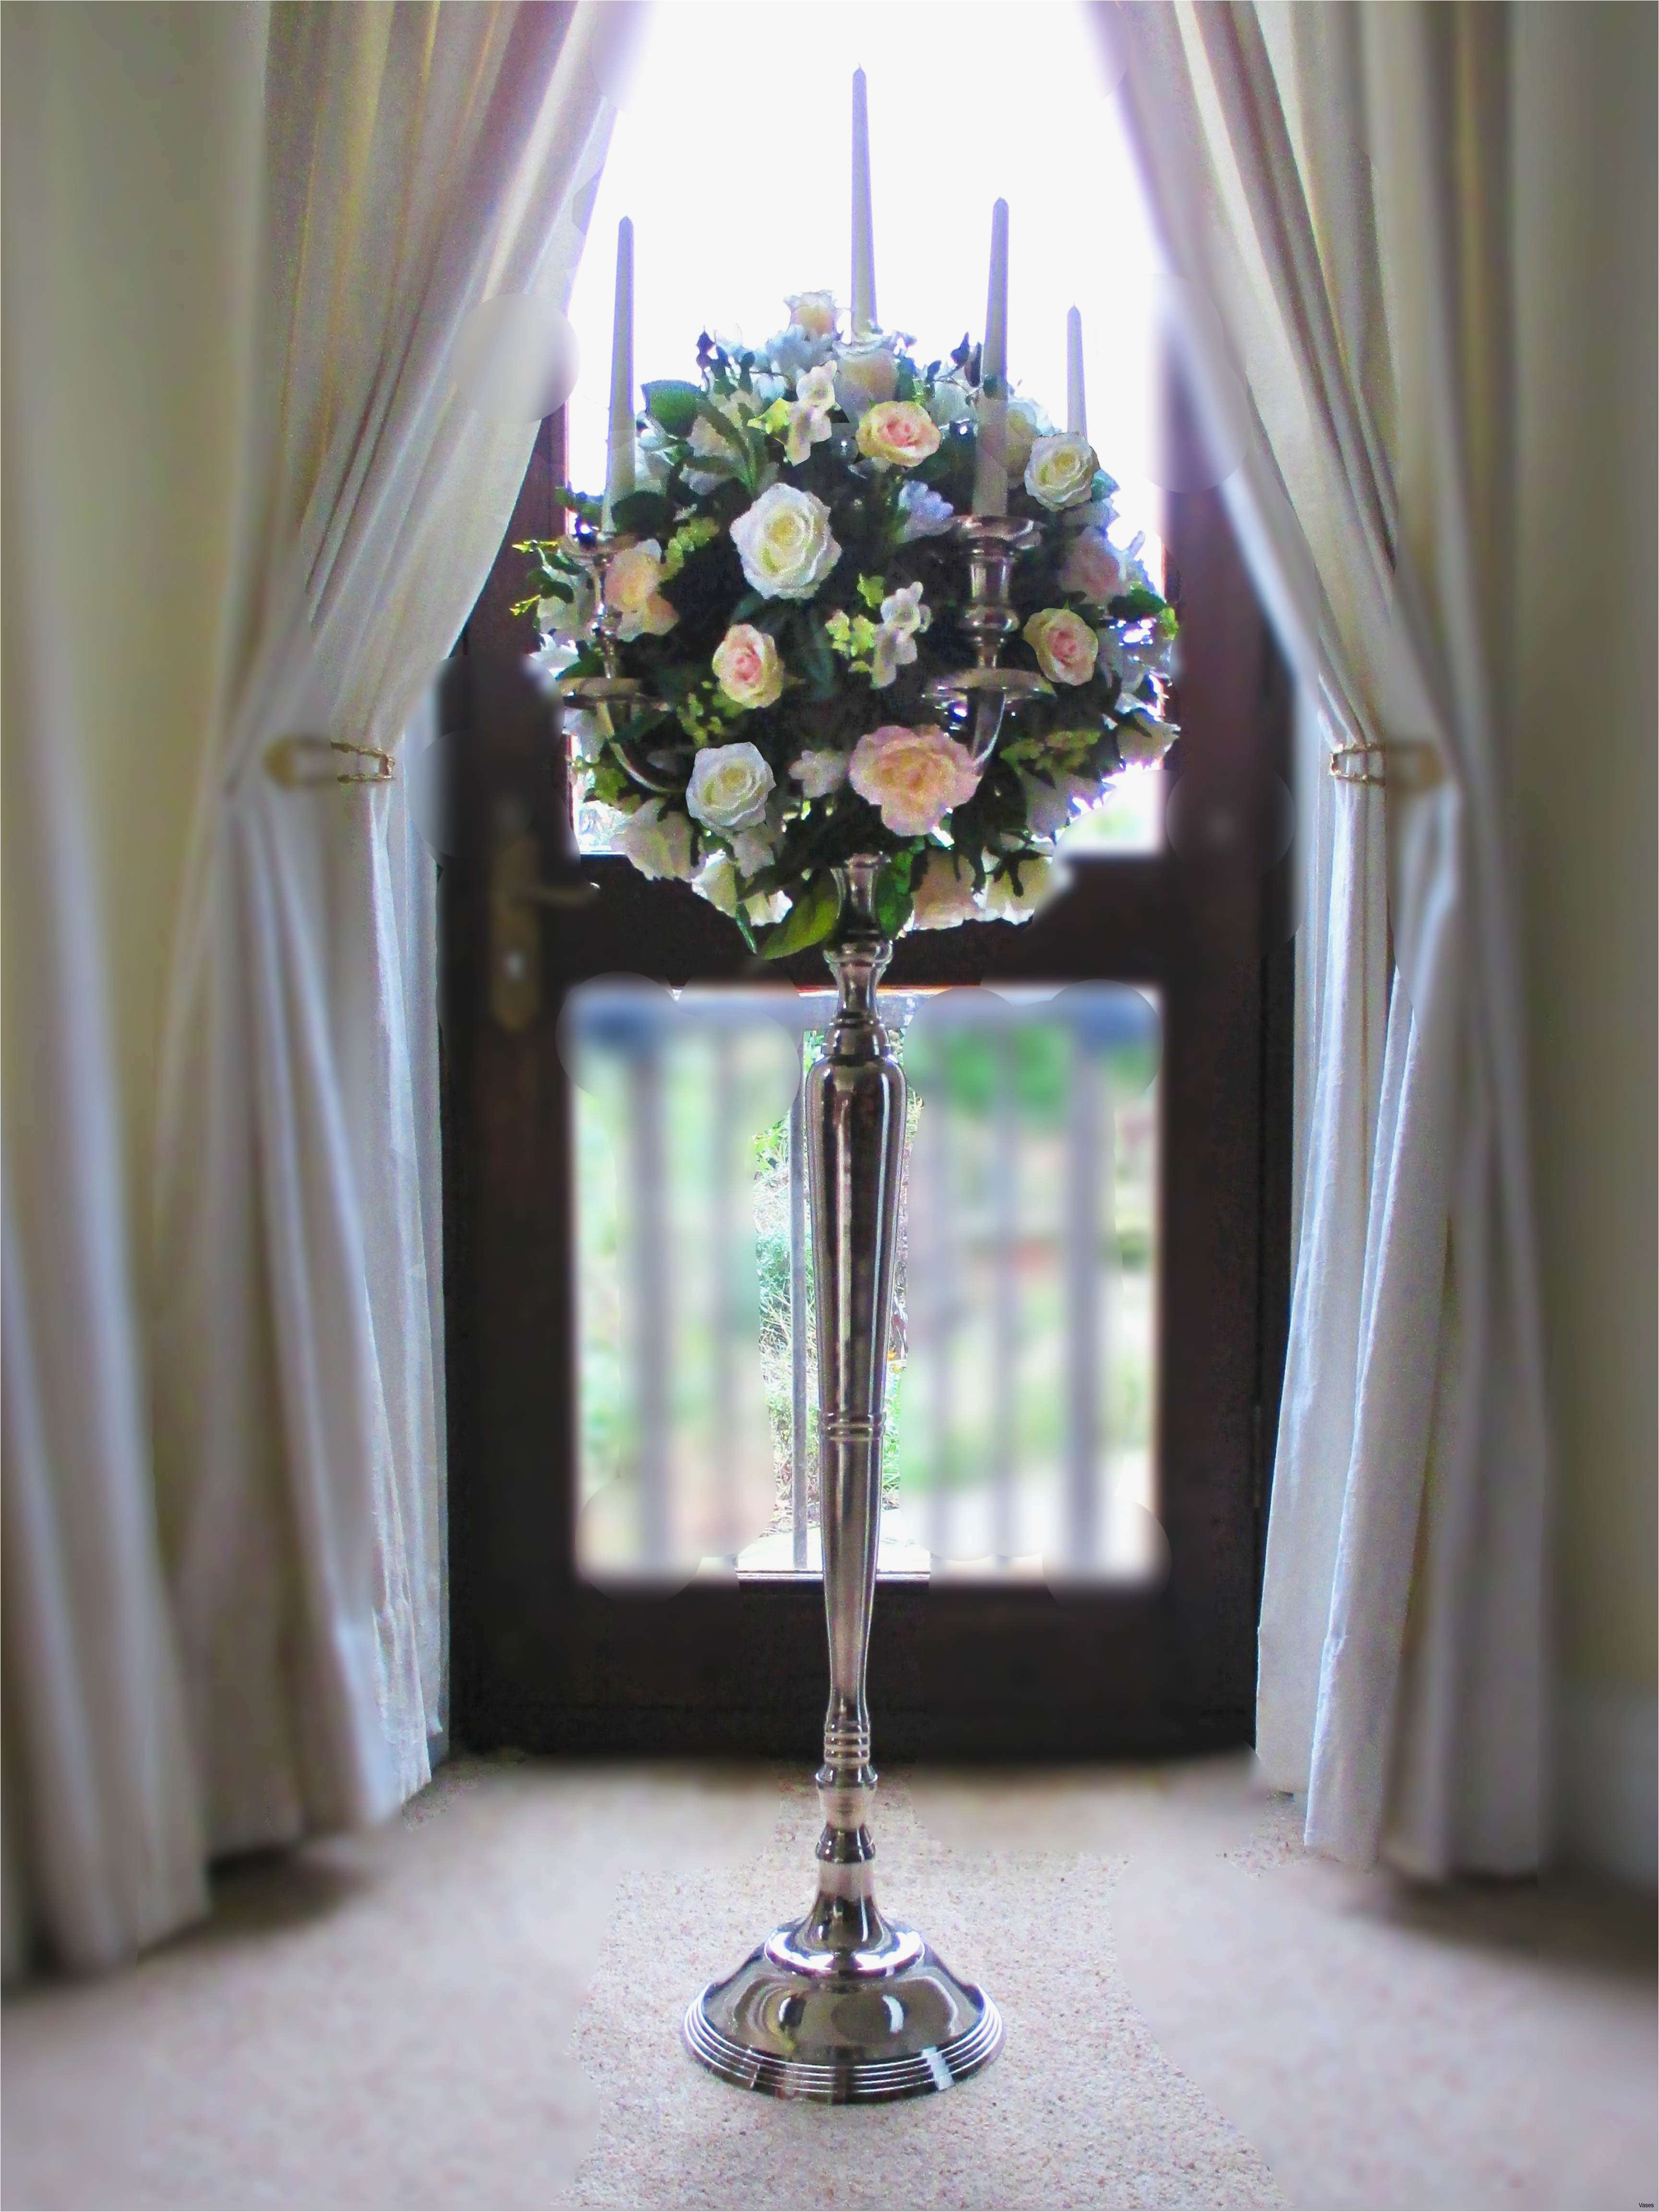 wedding flower vases of autumn wedding free wedding fall wedding centerpieces best tall vase in autumn wedding gallery cheap wedding bouquets packages 5397h vases silver vase leeds i 0d new